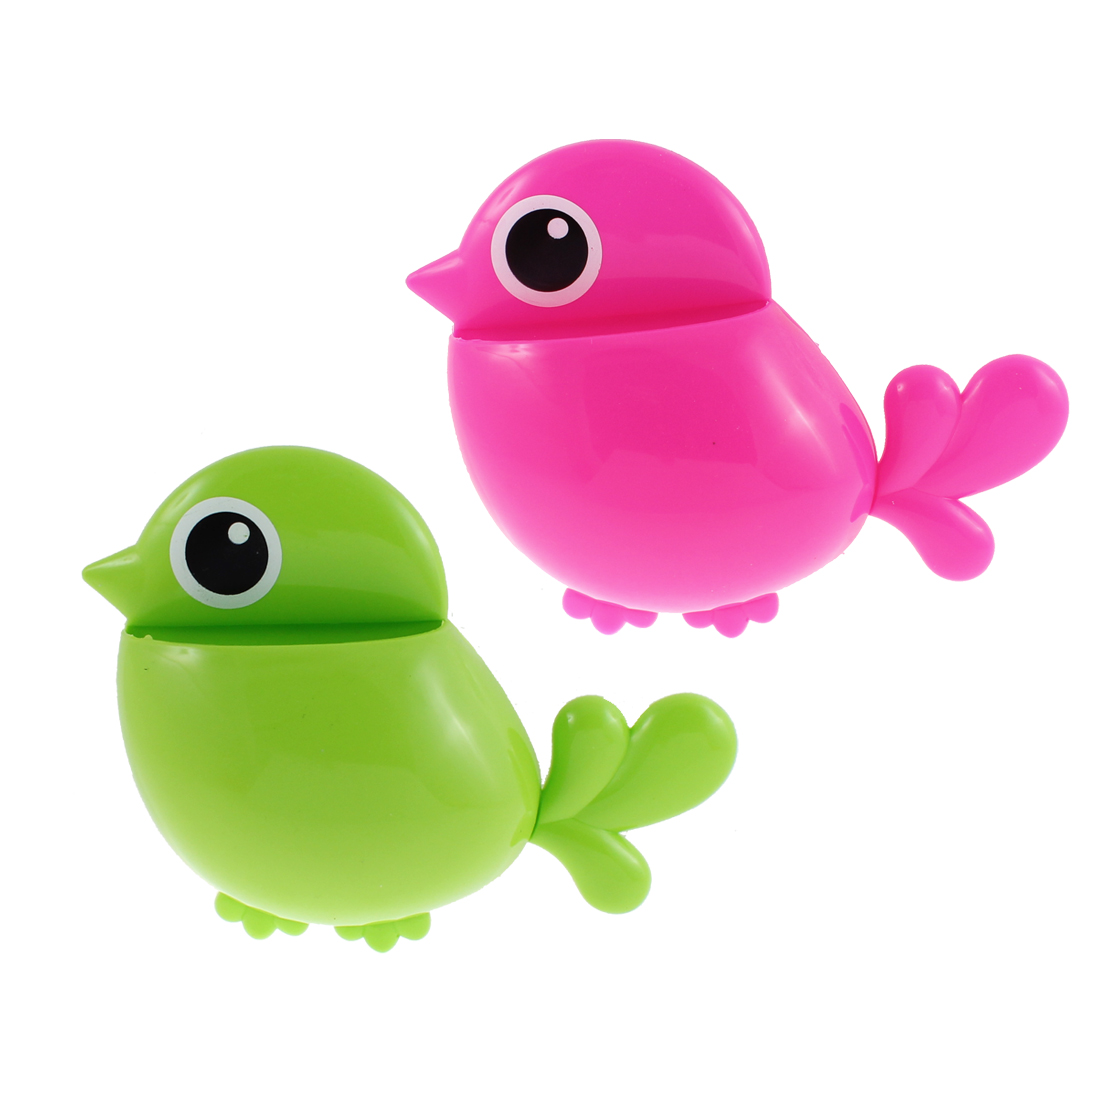 Plastic Bird Shape Suction Cup Toothbrush Toothpaste Holder Fuchsia Green 2 Pcs